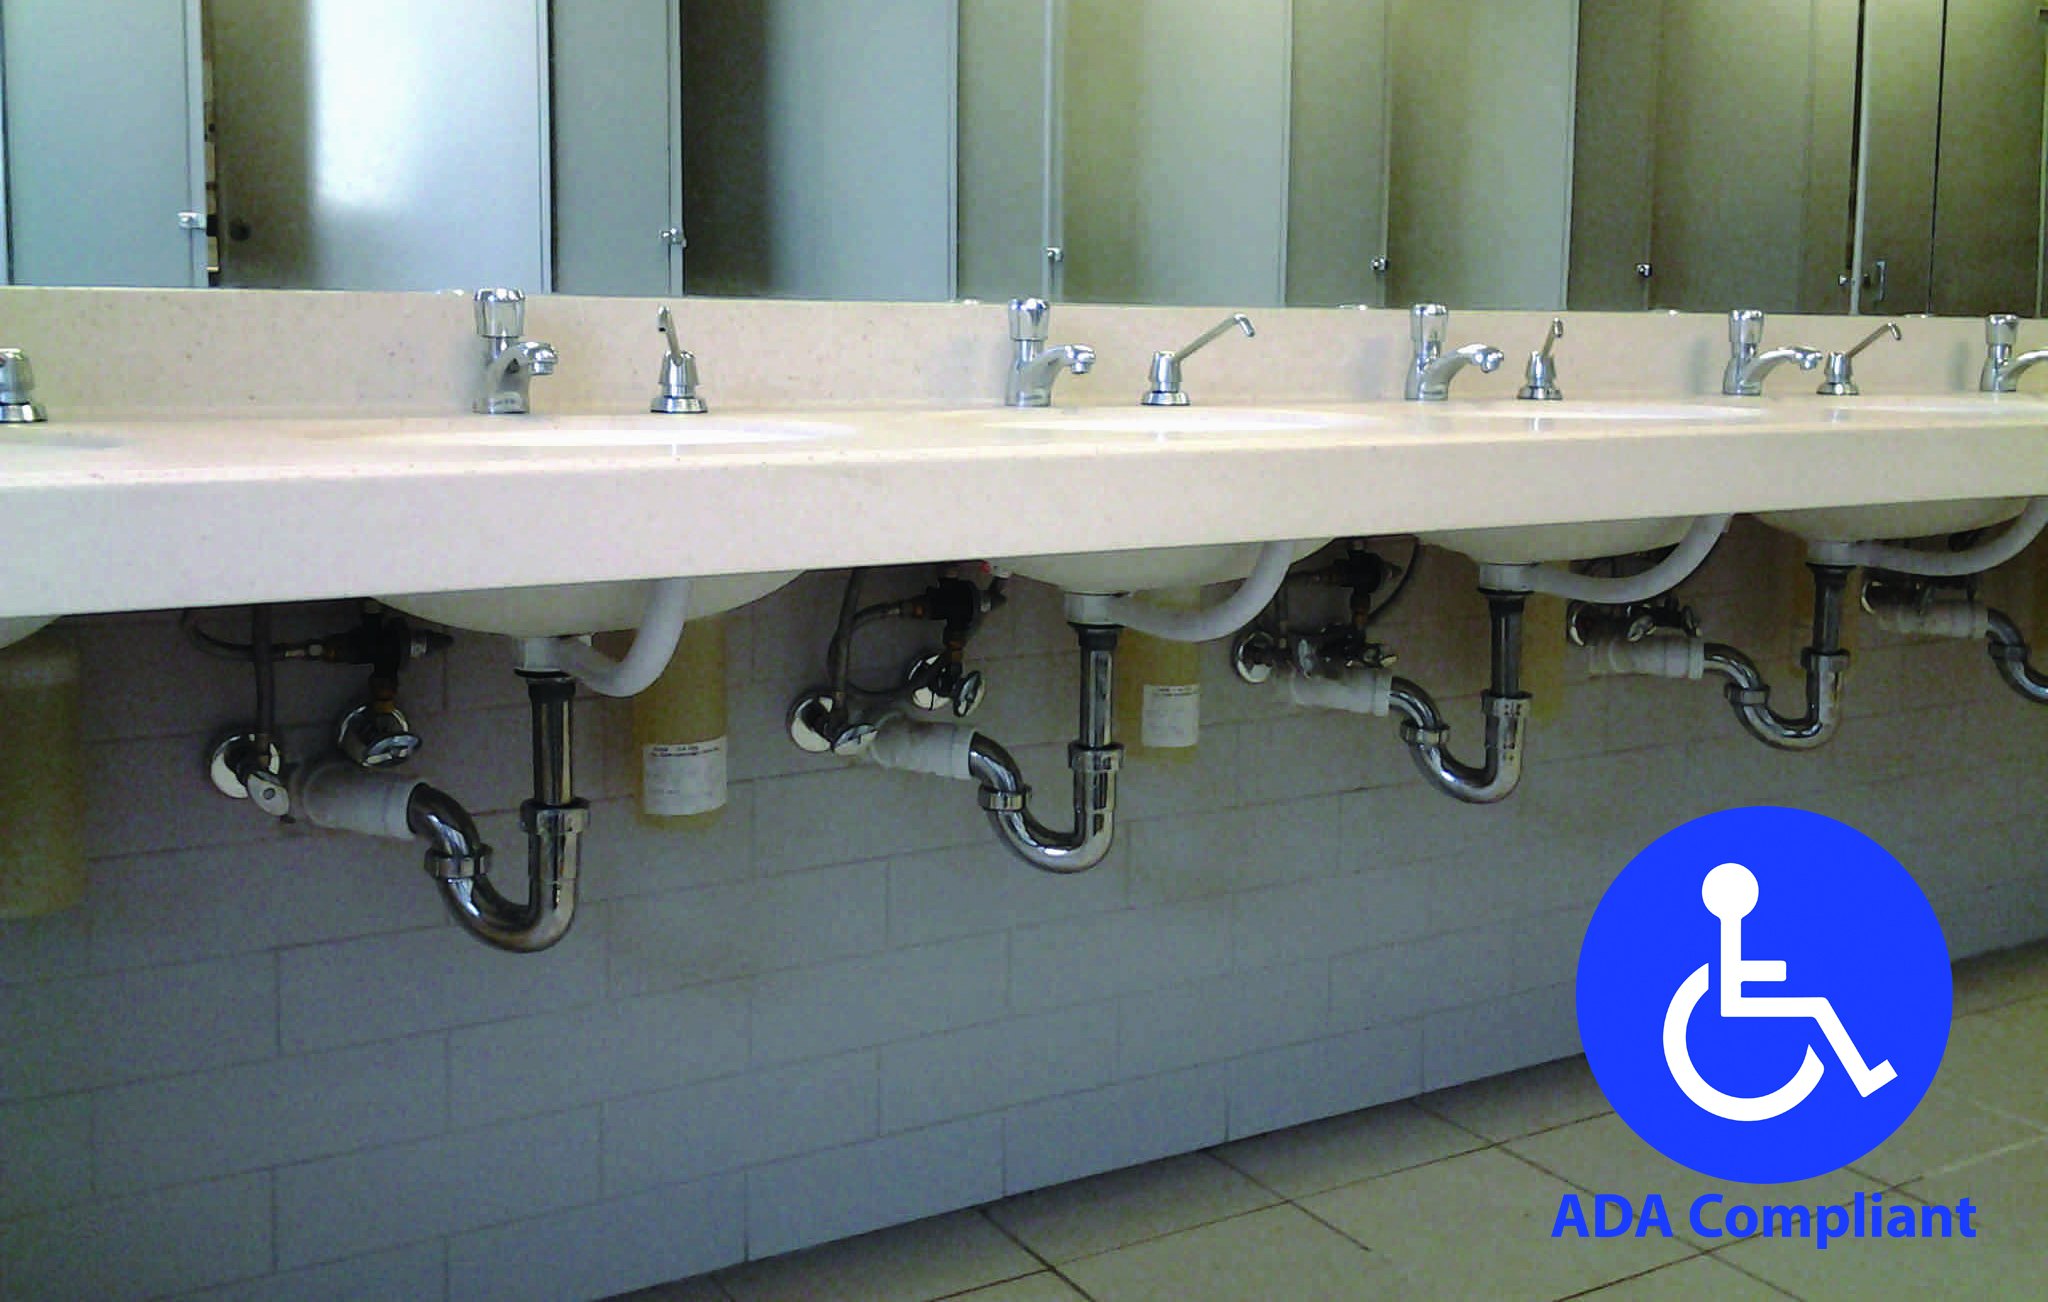 Example of an ADA Compliant restroom